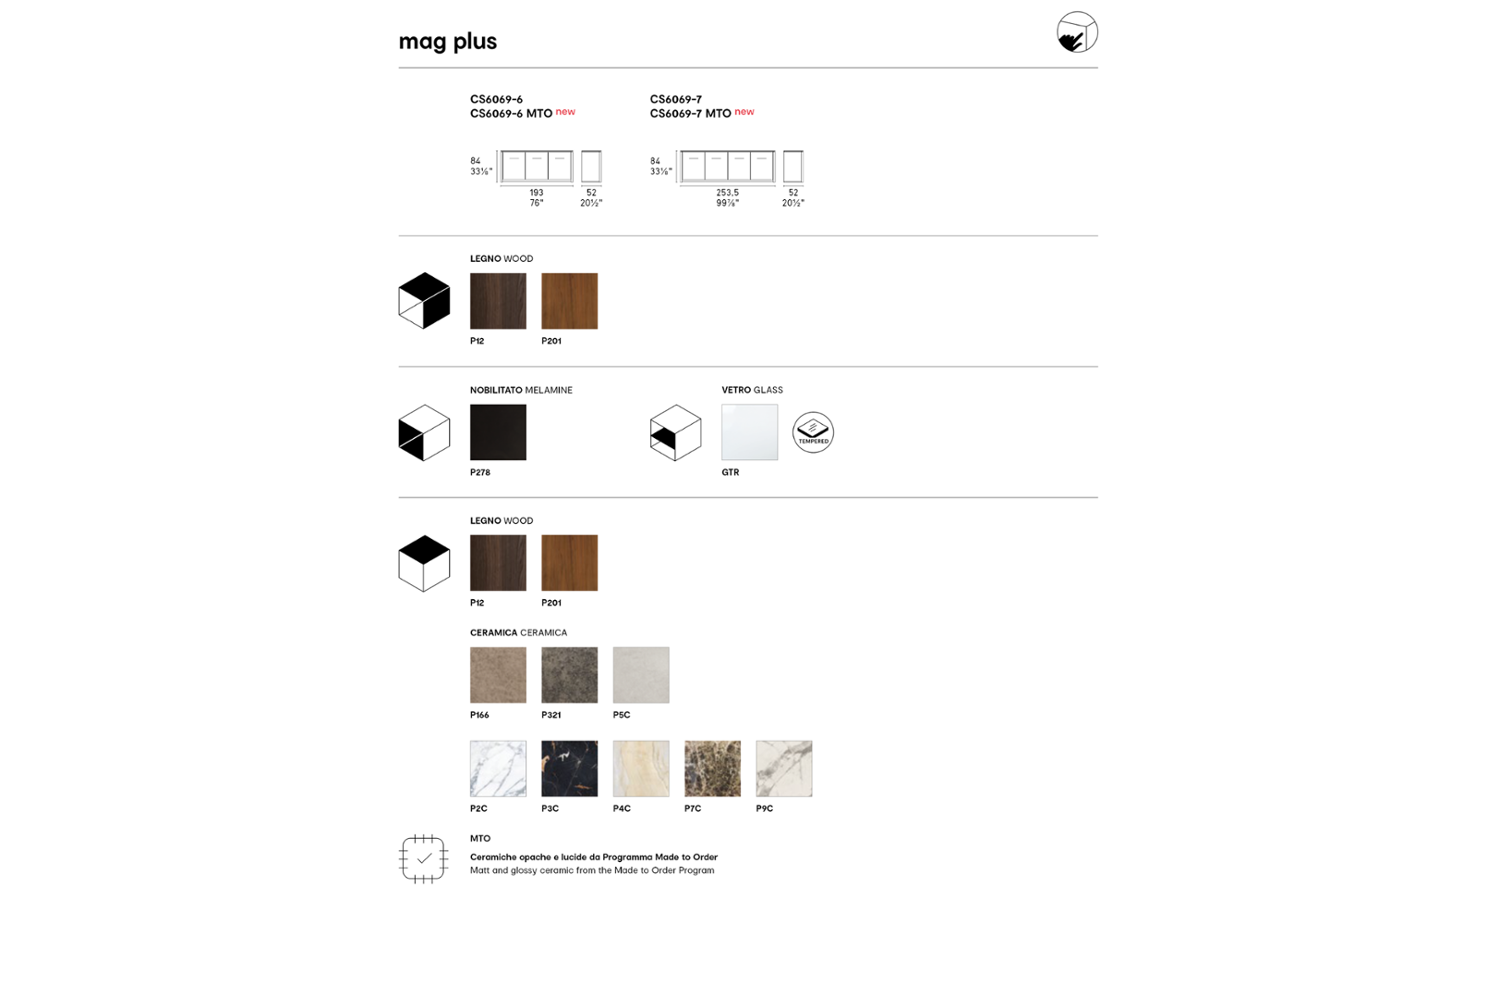 MAG PLUS SCHEMATIC CALLIGARIS MAG PLUS SCHEMATIC CALLIGARIS.png CALLIGARIS schematic mag plus